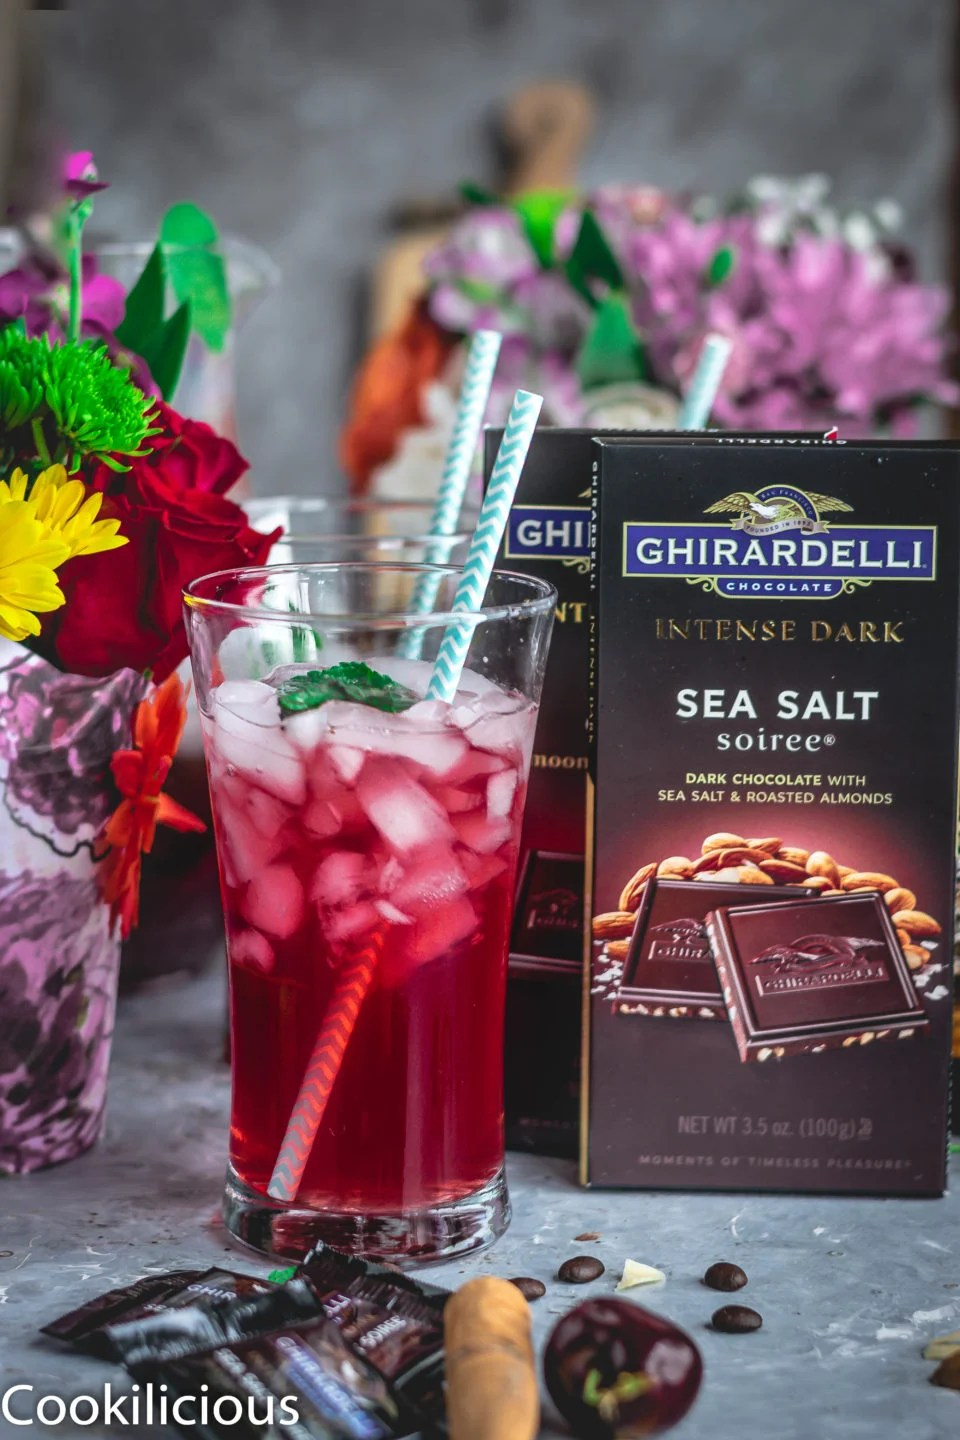 a glass of Cherry Lemon Iced Tea with a straw in it and Ghirardelli dark chocolate on the side